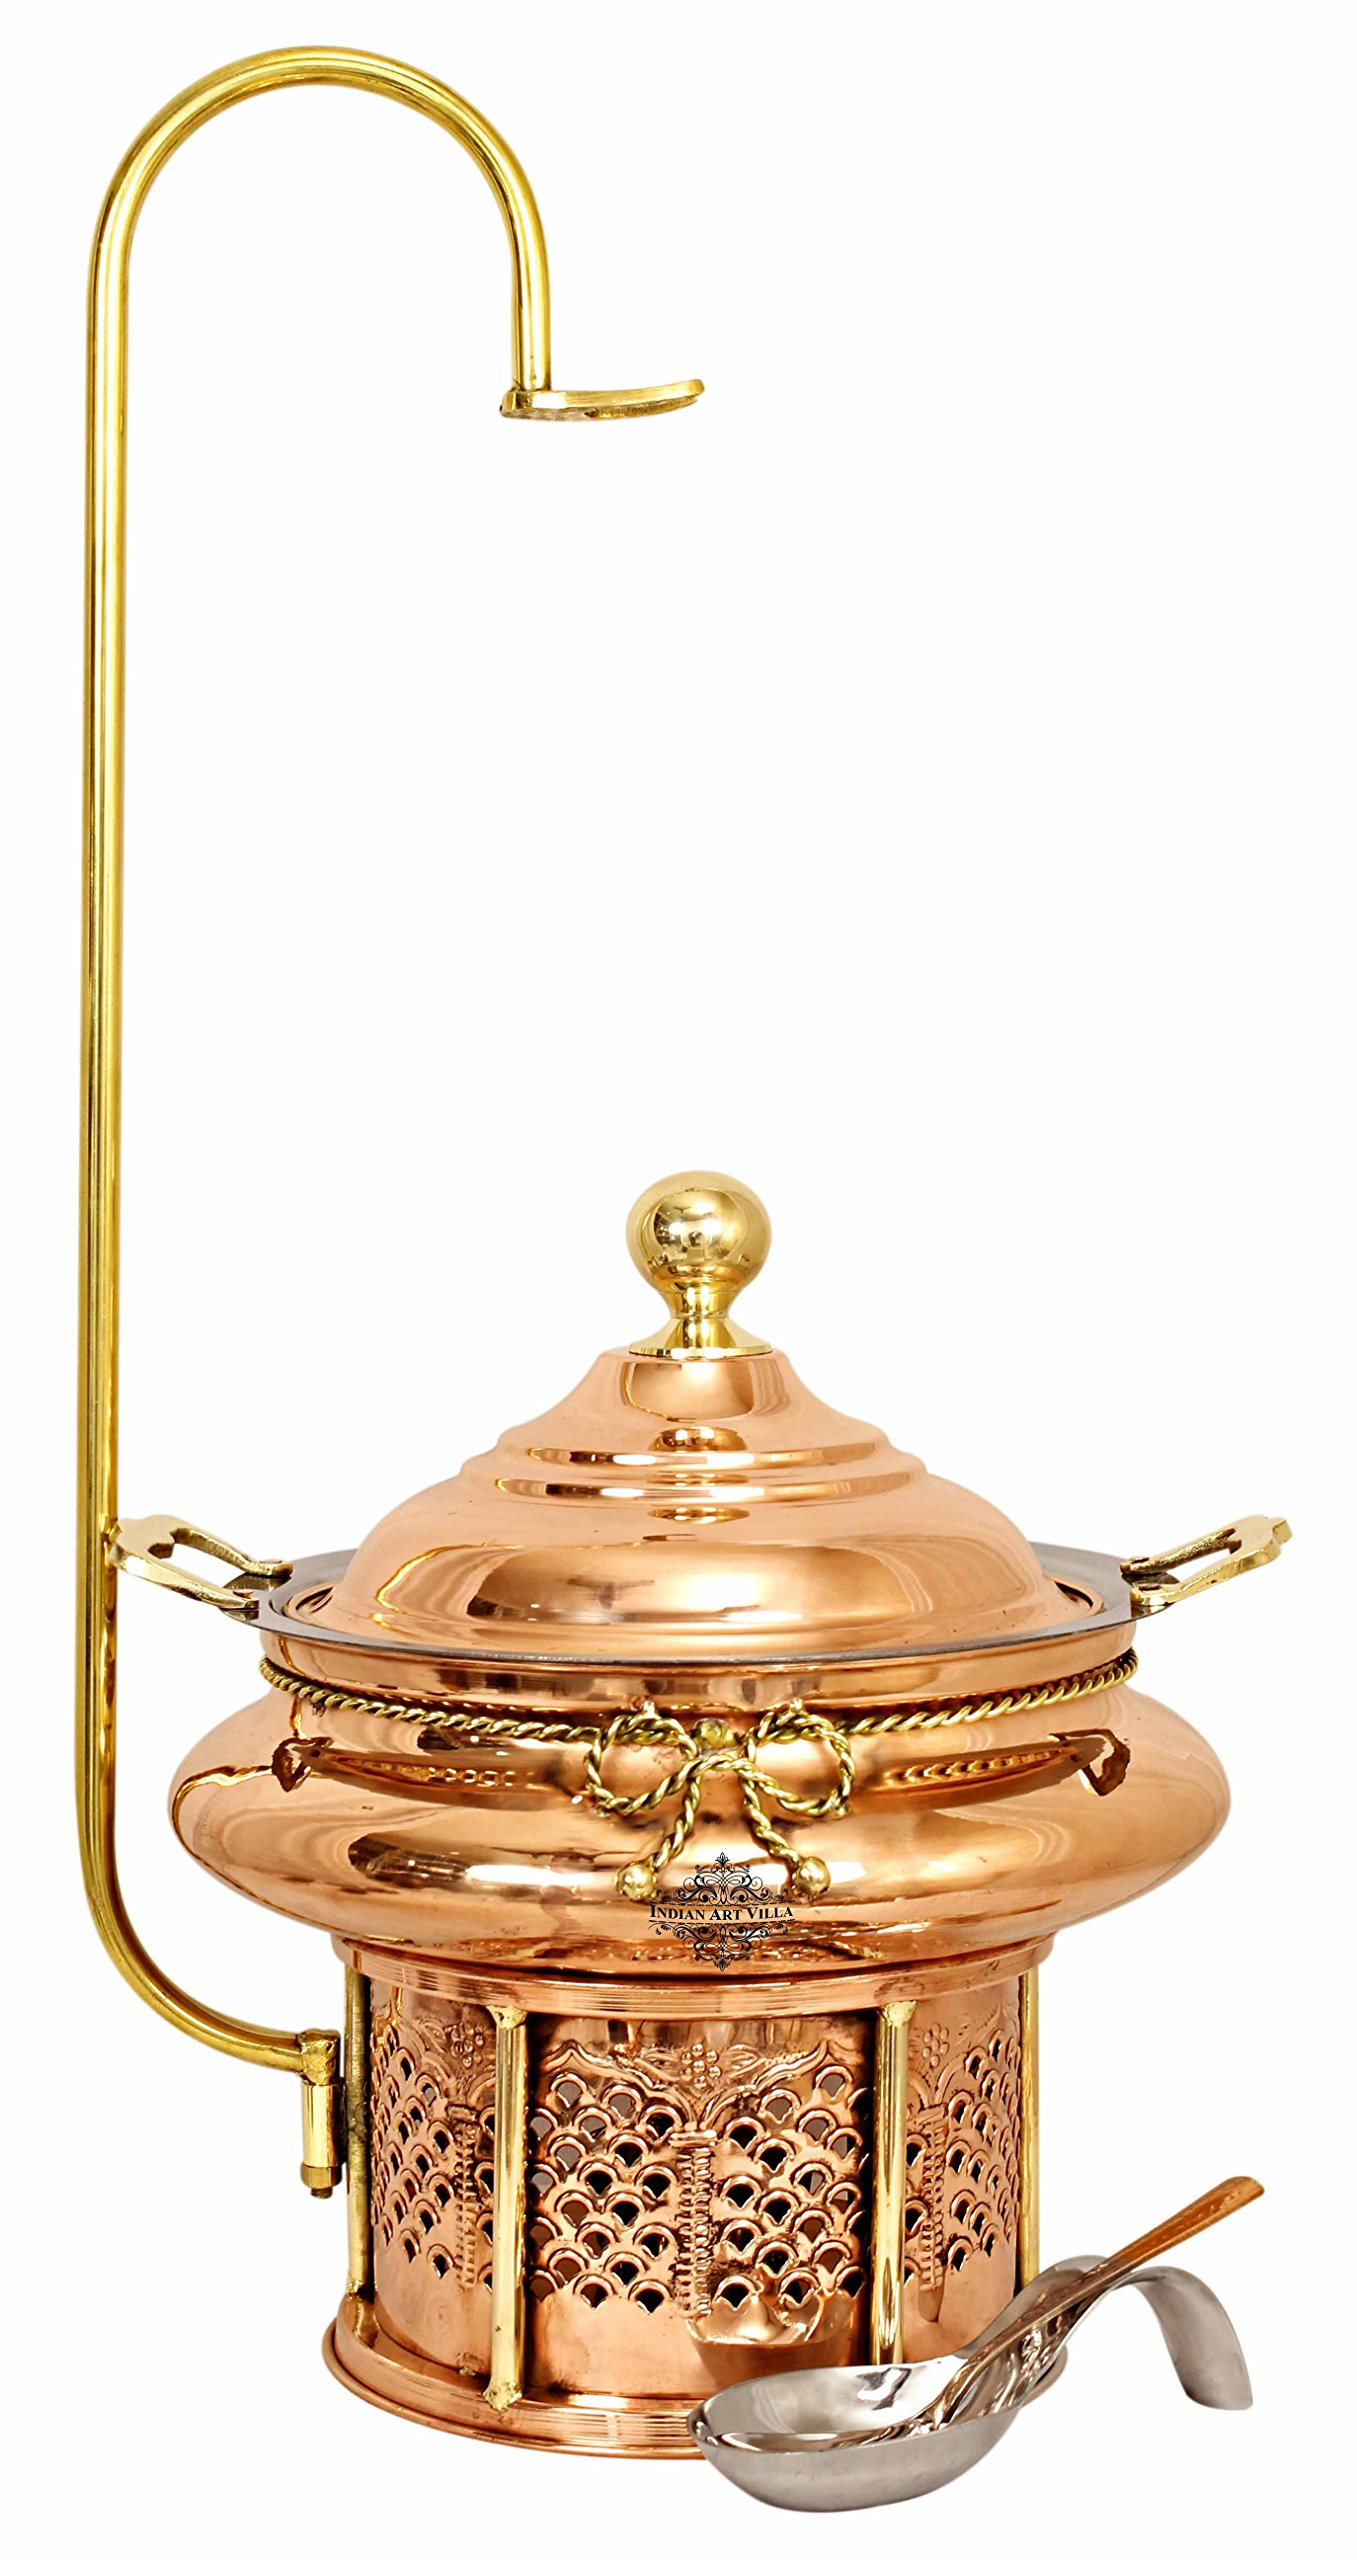 Indian Art Villa Steel Copper Chafing Dish with Sigdi Gel Fuel Stand & Handle, Buffet Warmer Serveware Party, 202 OZ